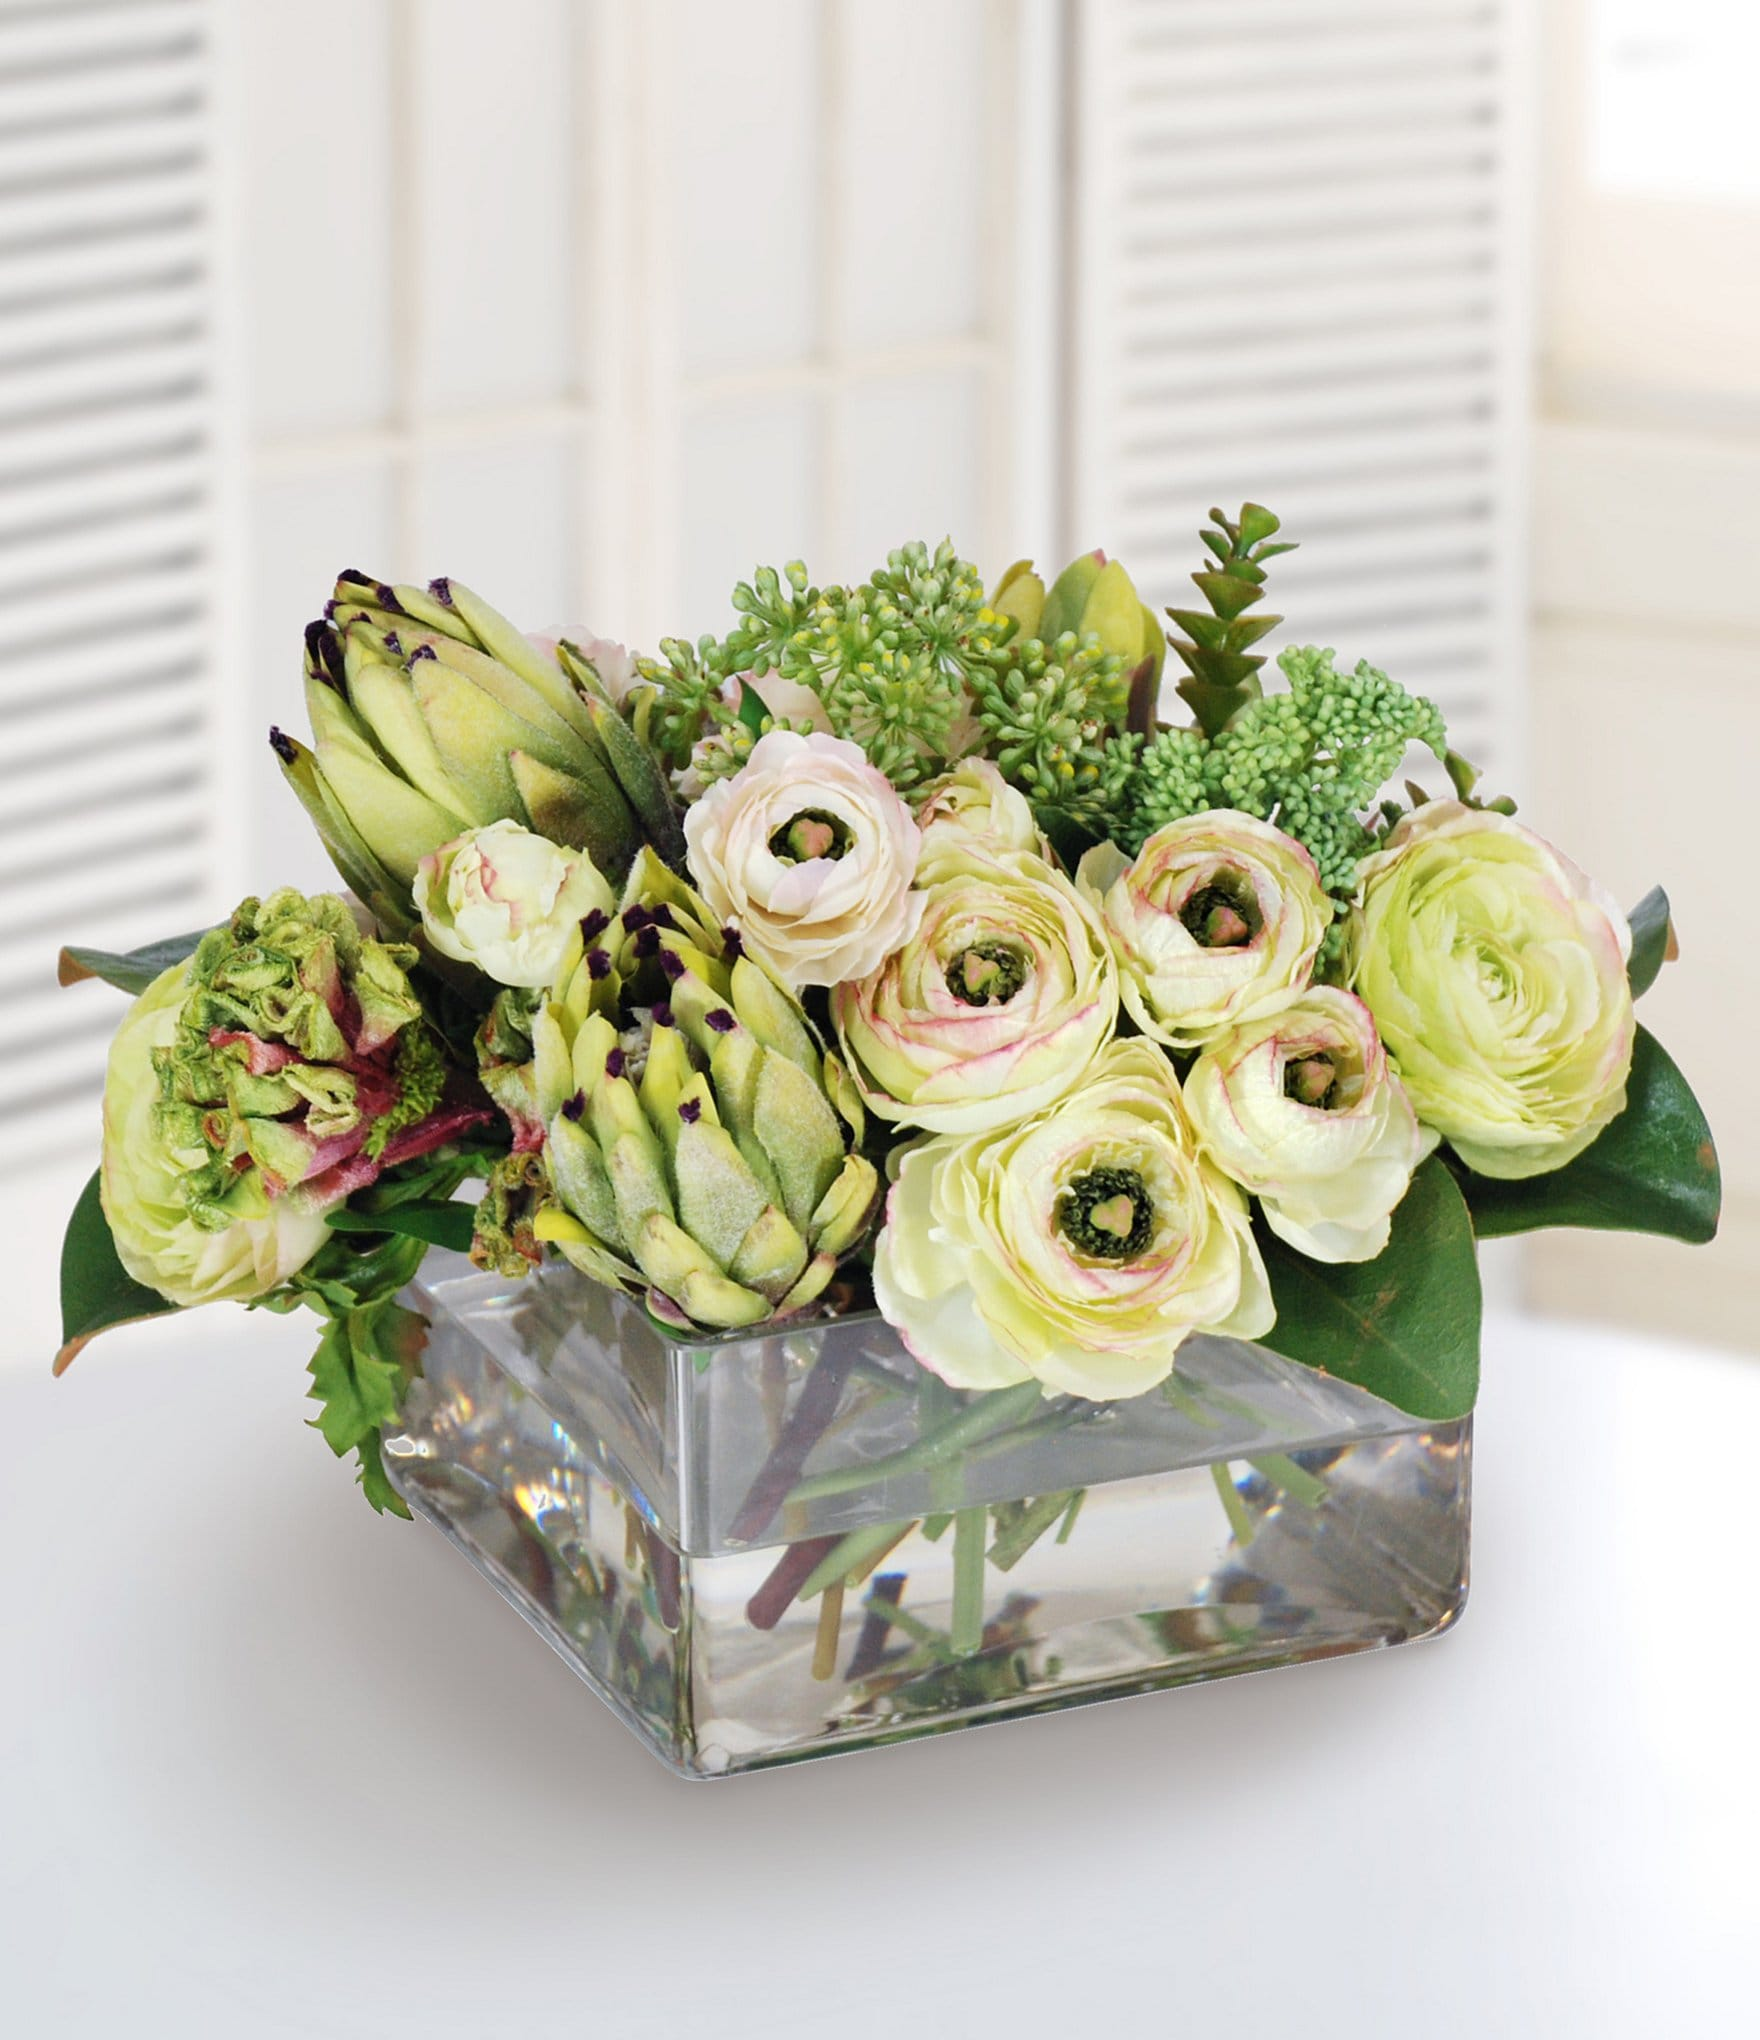 Winward Faux Flowers Protea And Ranunculus In Square Glass Vase Dillard S